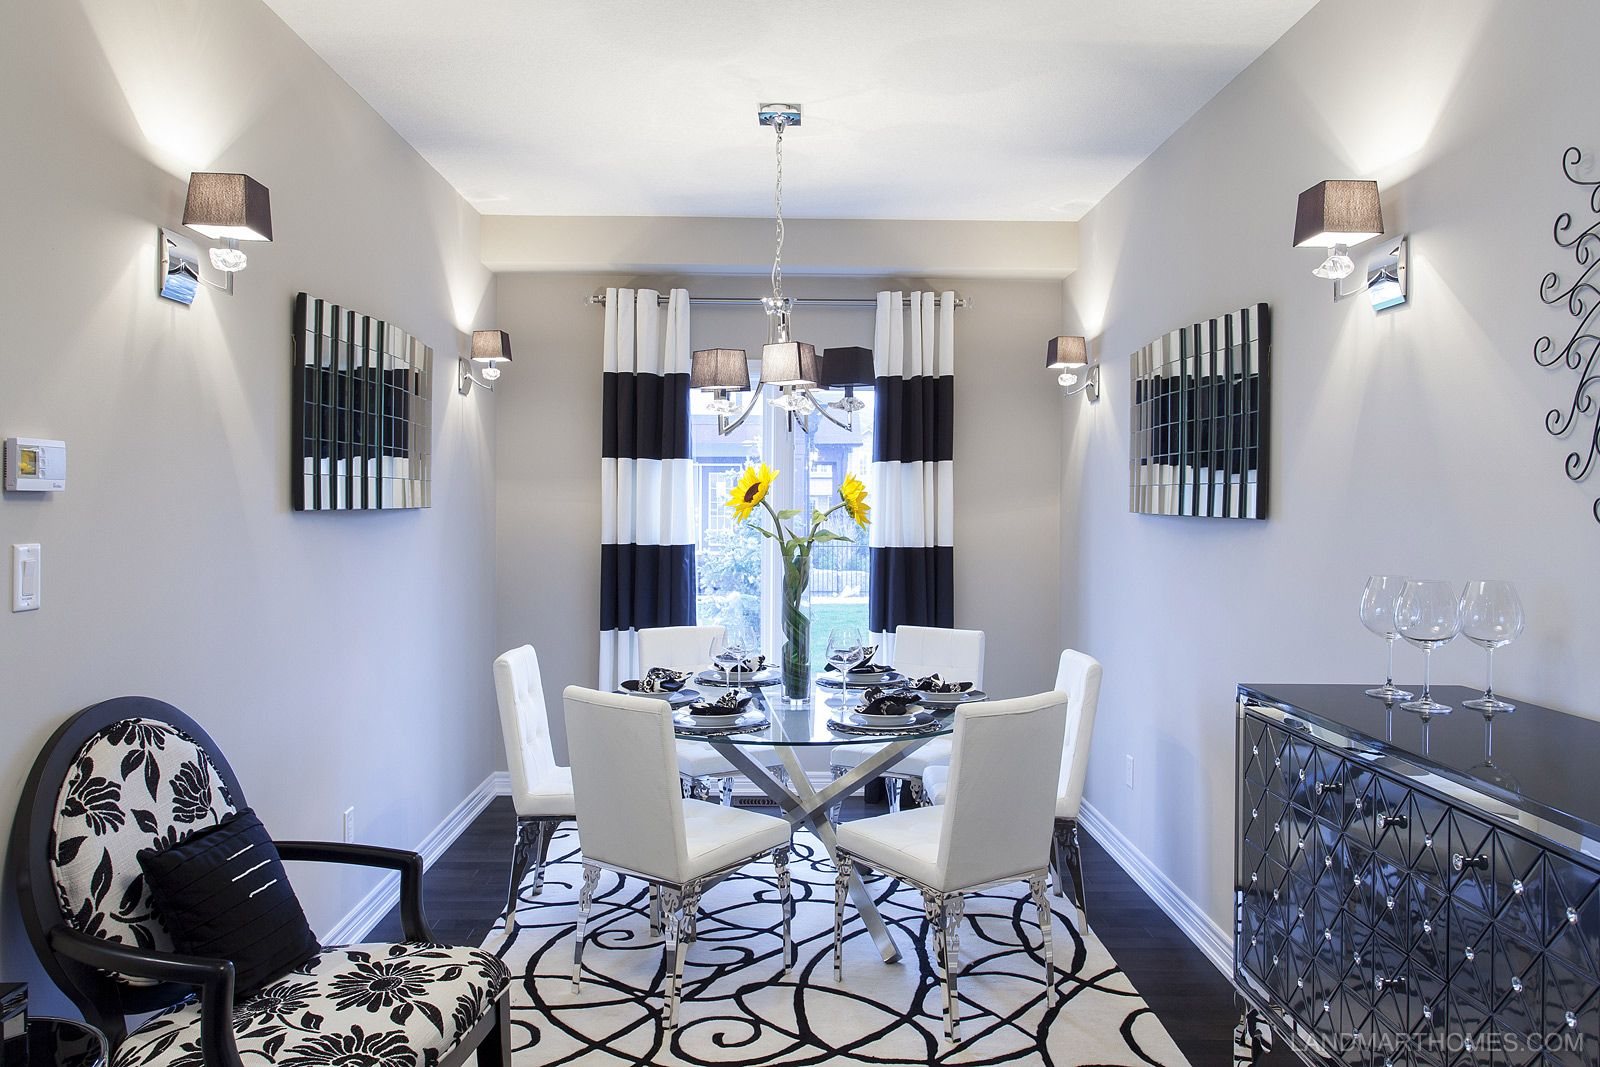 The depth of this dining room combined with its modern design give it a striking look. Penny Lane Estates in Stoney Creek, Ontario. By Landmart Homes. #hamont #diningroomideas